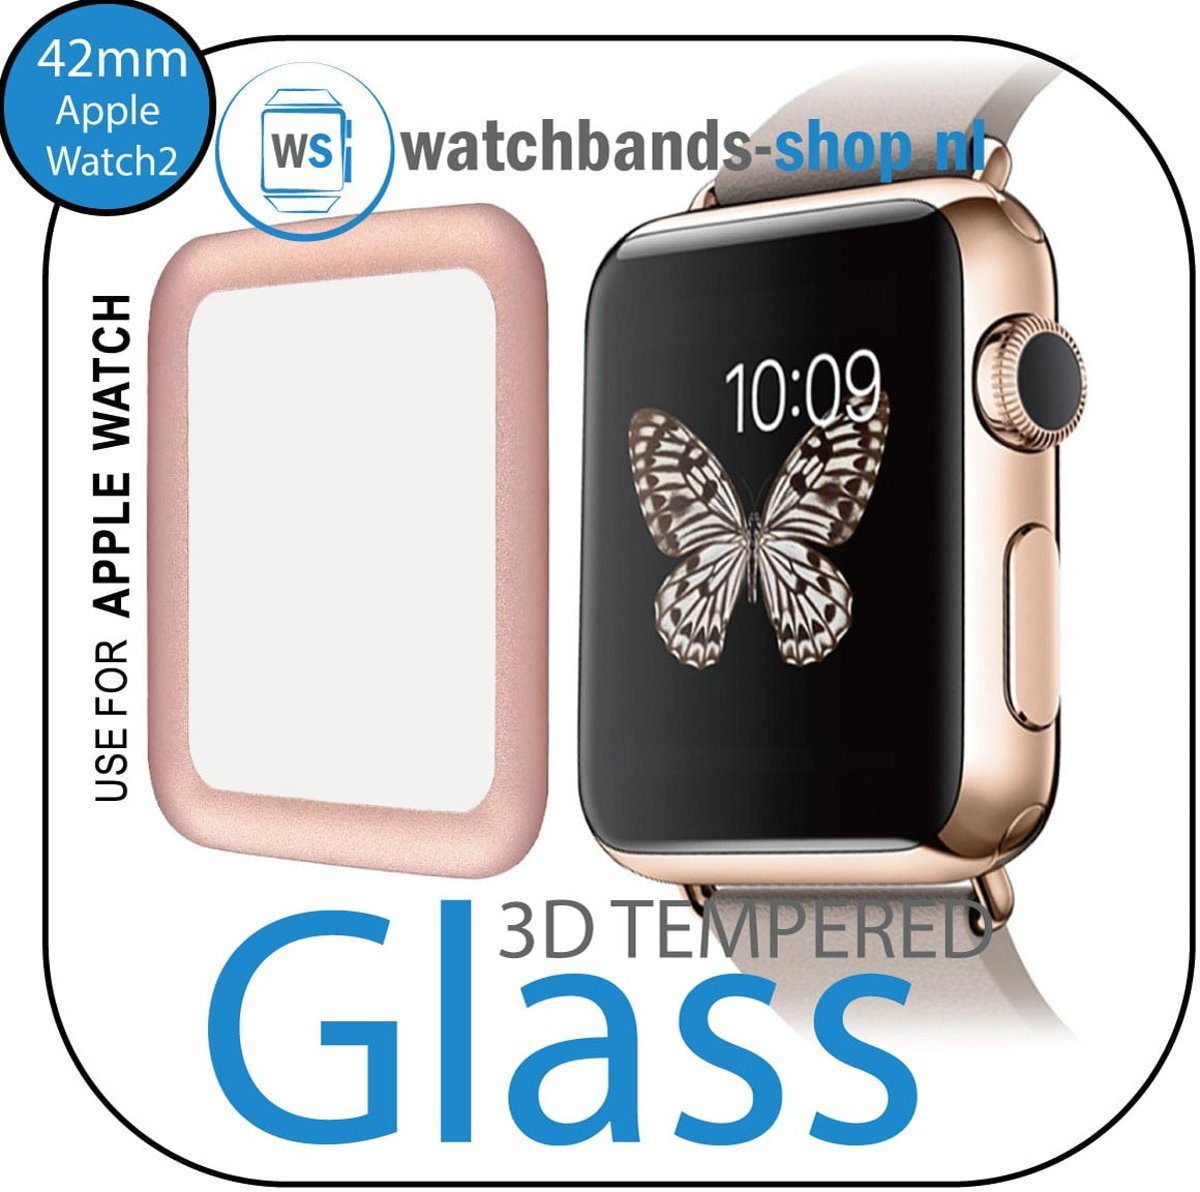 42mm full Cover 3D Tempered Glass Screen Protector For Apple watch / iWatch 2 rose gold edge   Watchbands-shop.nl kopen